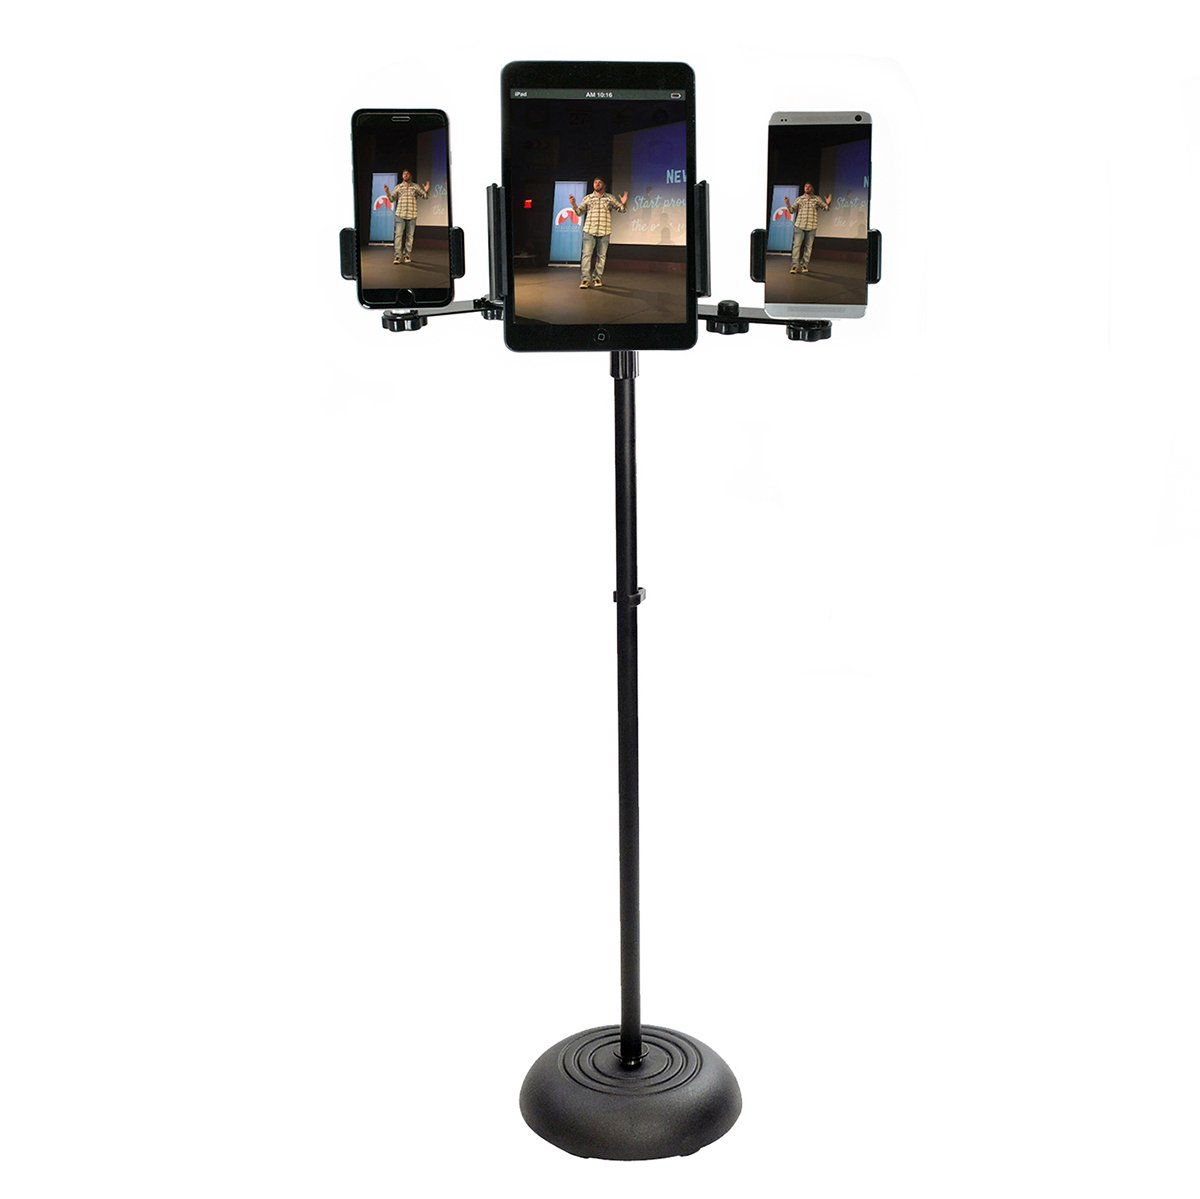 Livestream Gear - Tablet & Phone Mic Stand for Live Streaming at Events. Mount Multiple Phones and a Tablet During Events. (4 Device Mic Stand) by Livestream